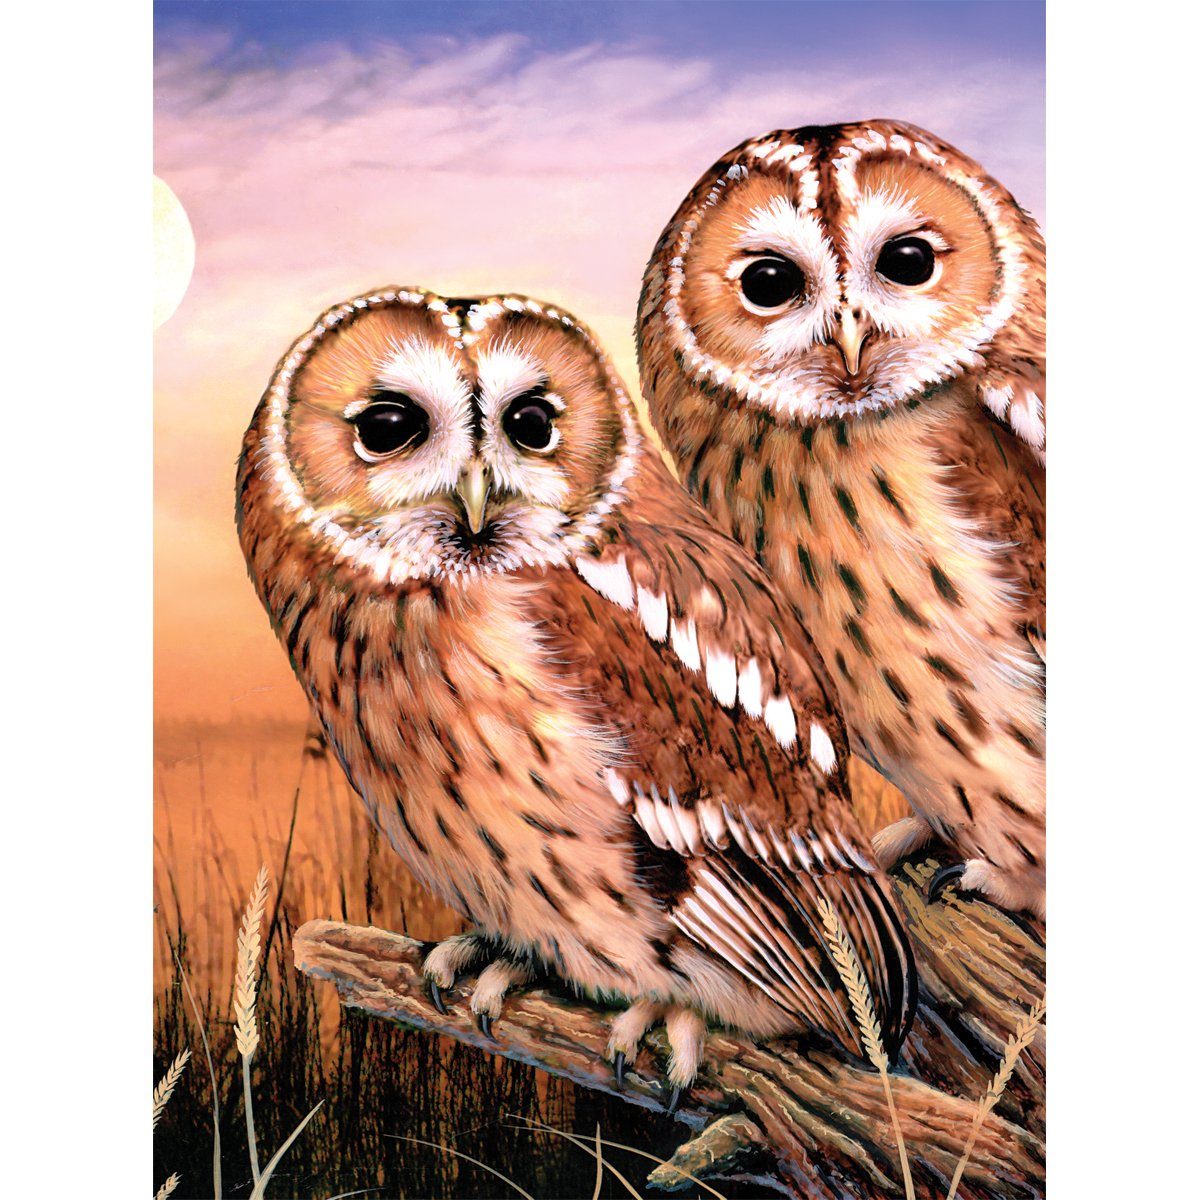 Tawny Owls Small Royal Brush PJS-87 8.75 by 11.75-Inch Junior Paint by Number Kit